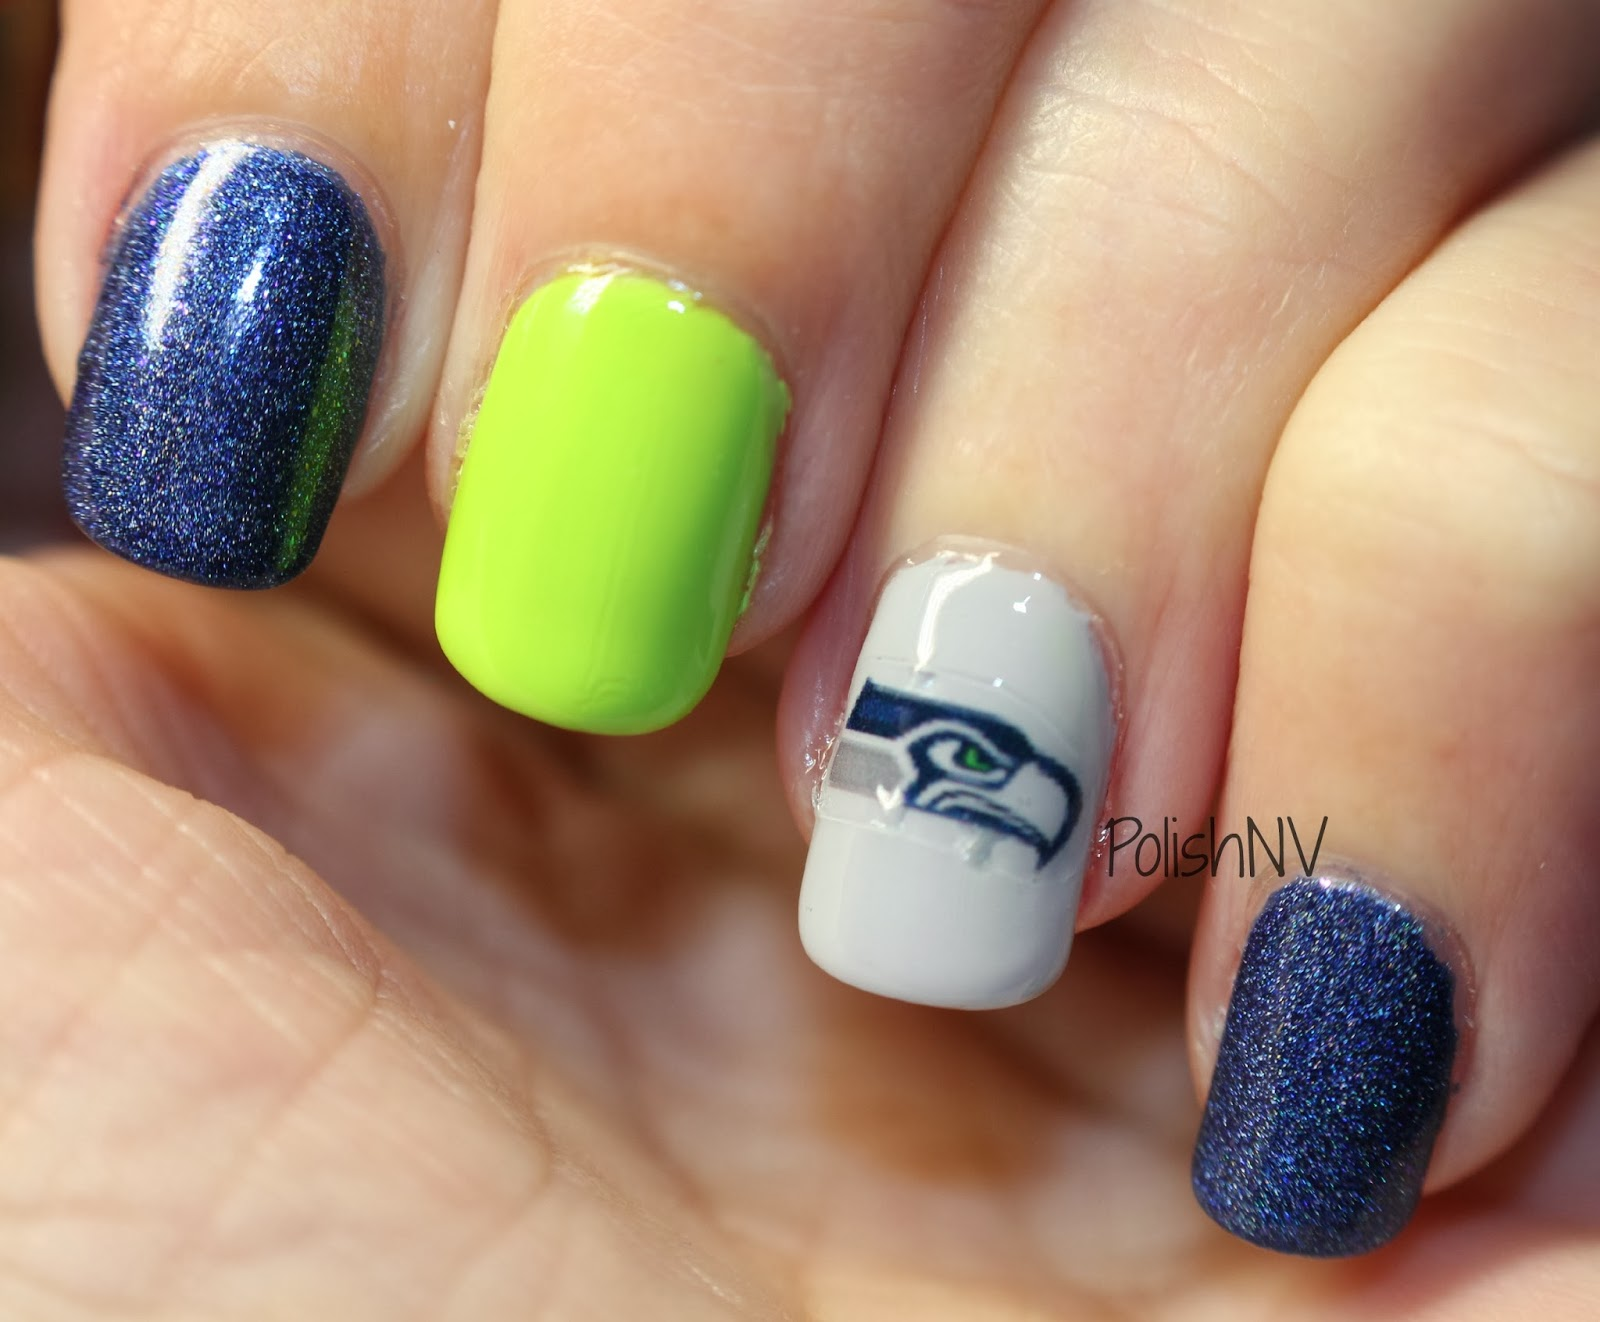 Seattle Seahawks nail art